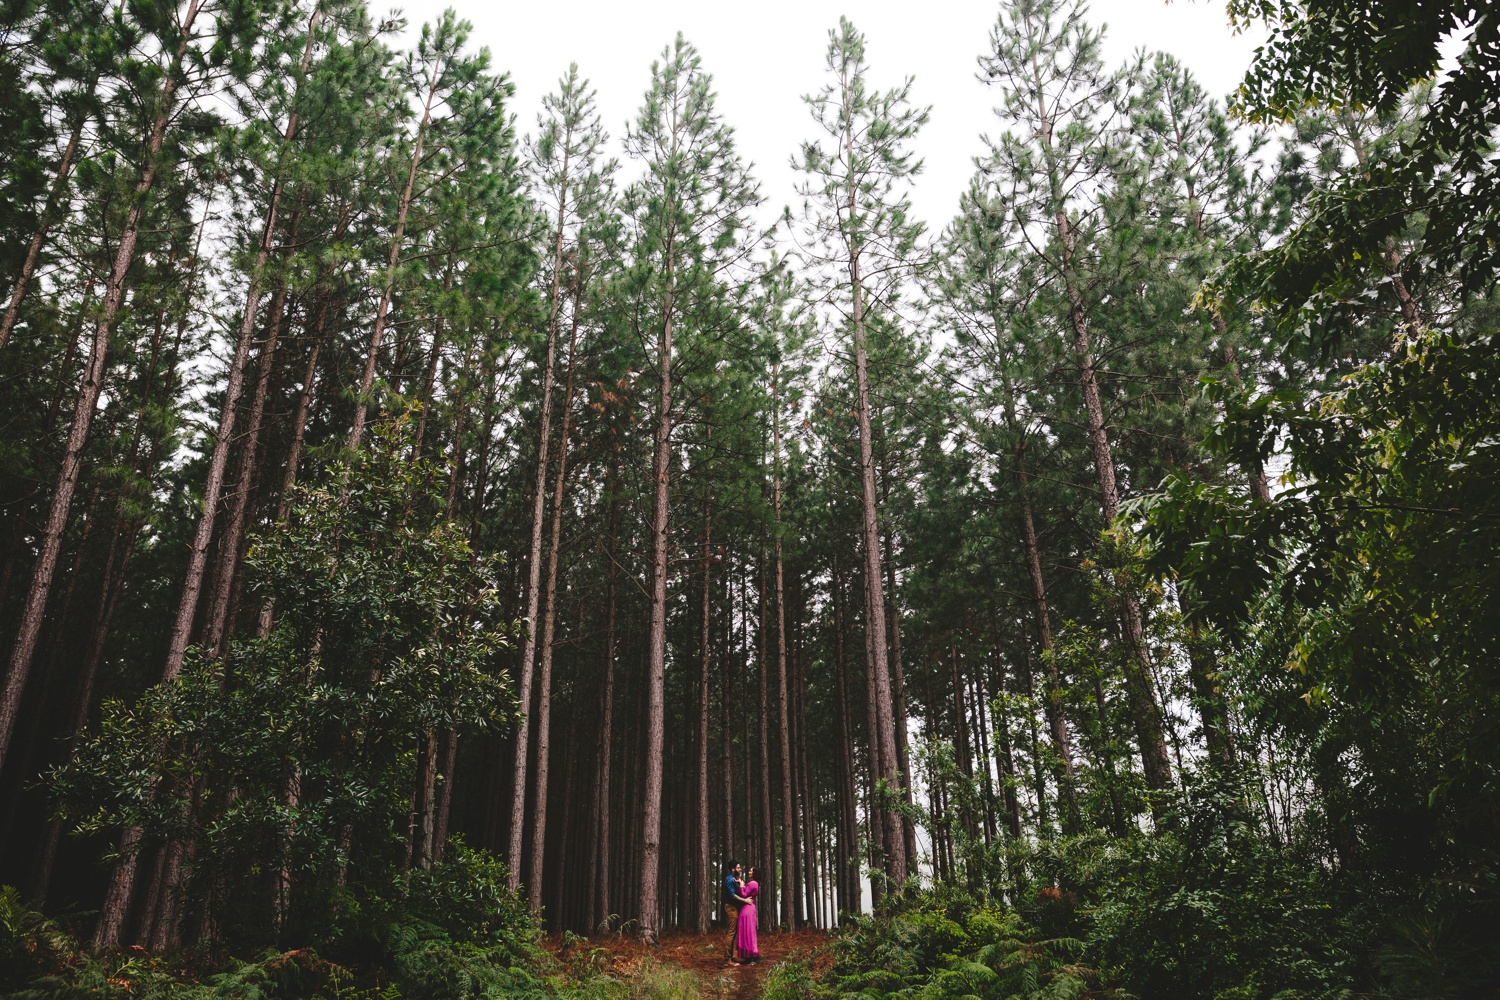 western_cape_tsitsikamma_storms_river_forest_ferns_stormy_couple_session_0721.jpg